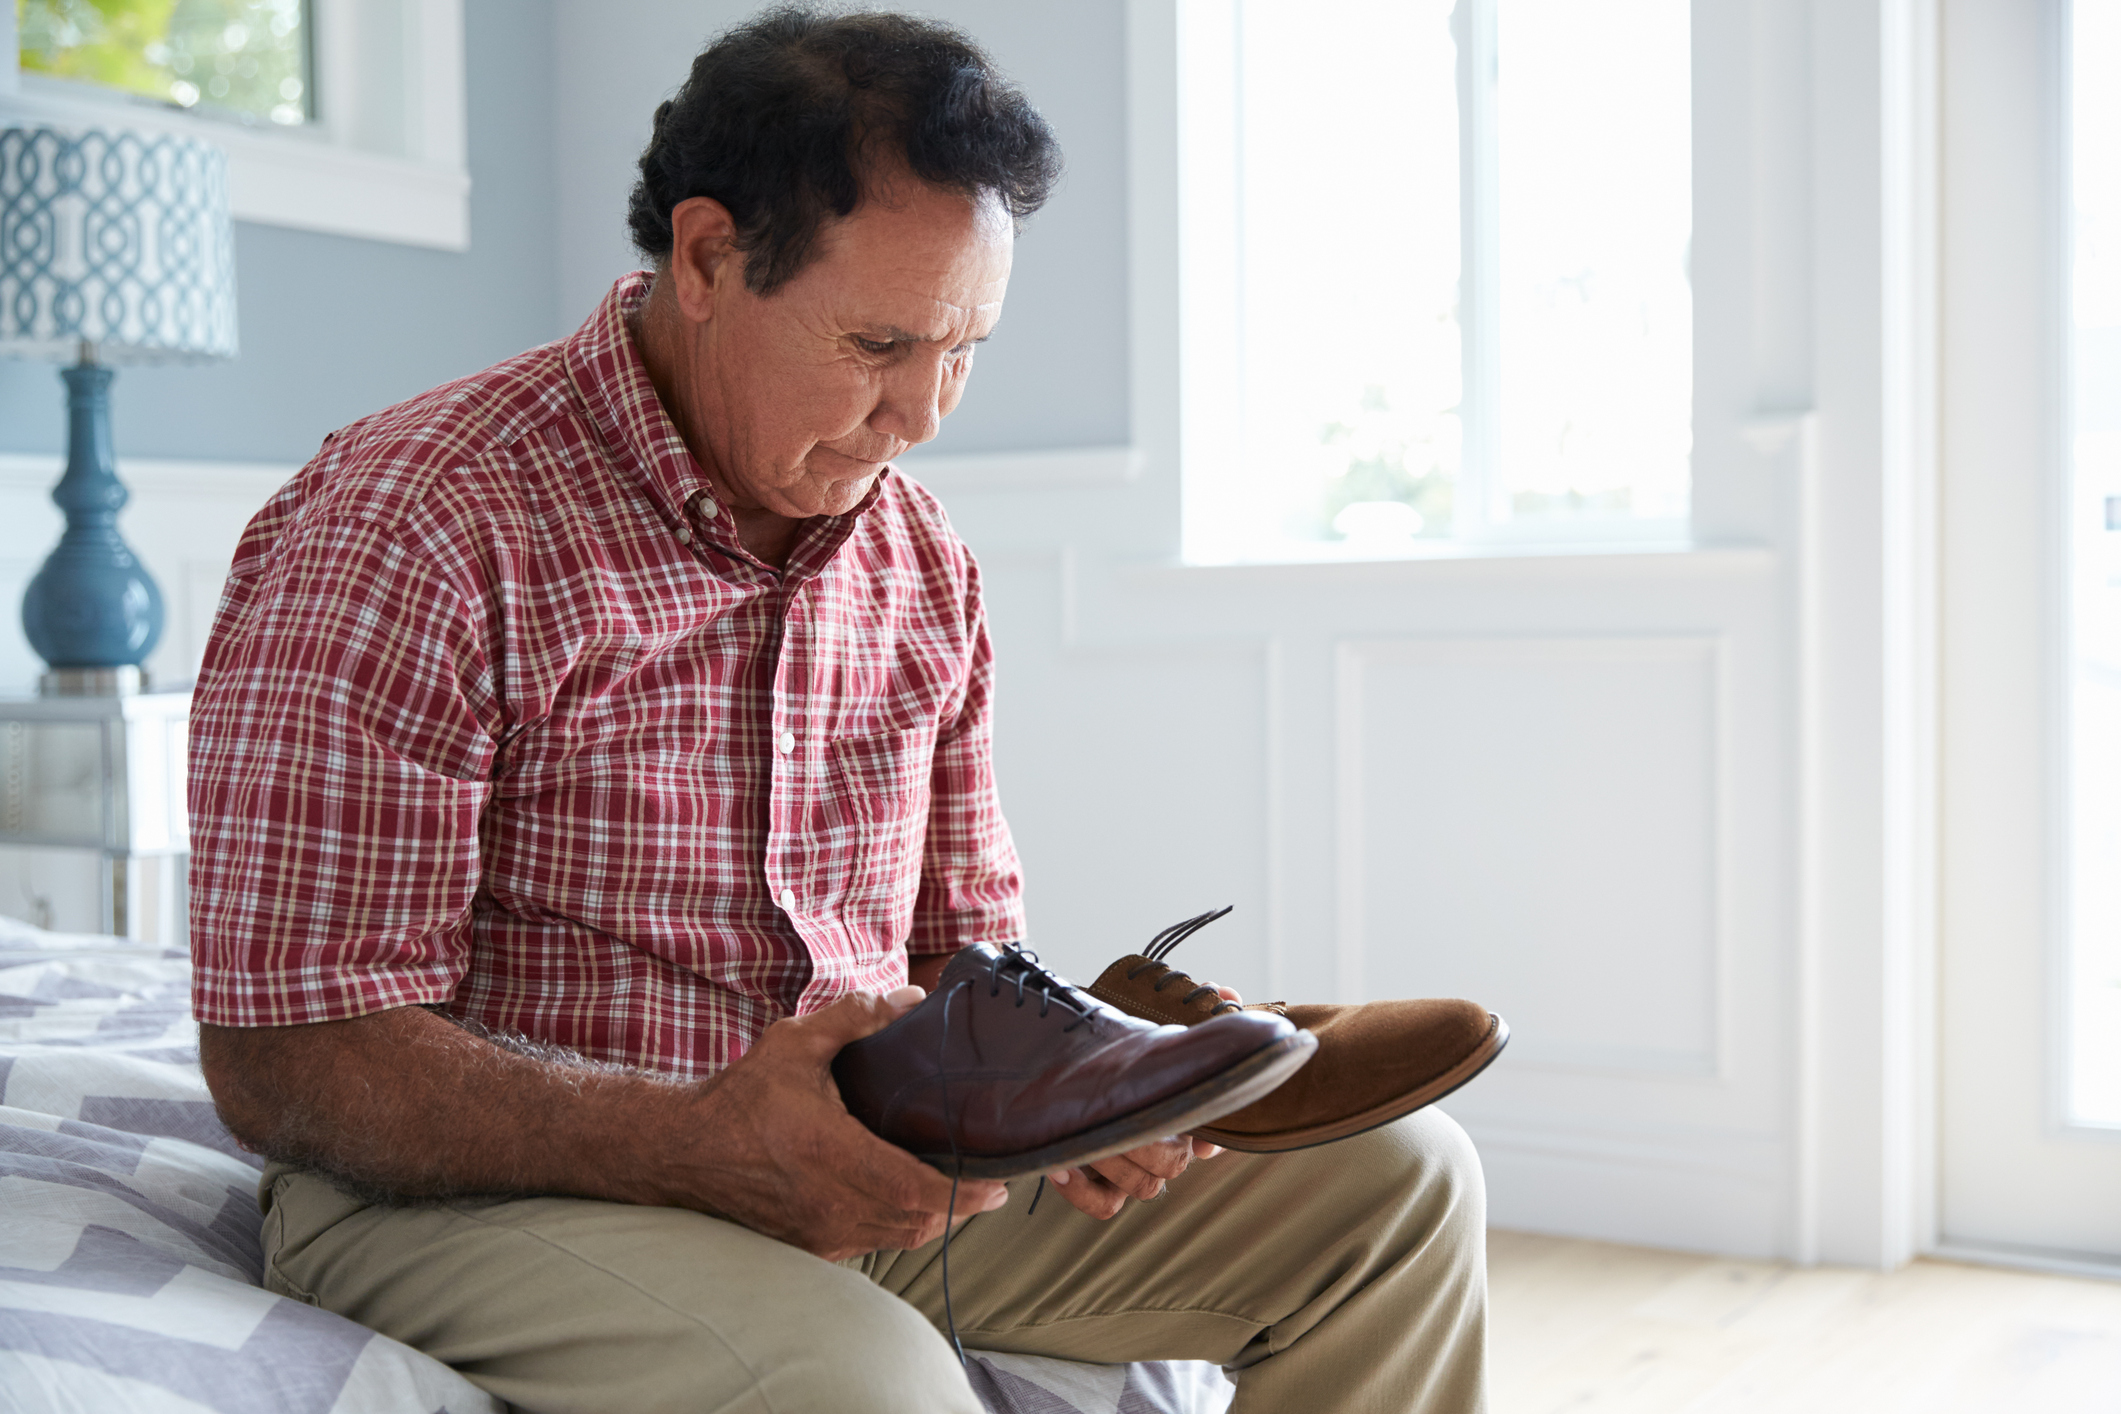 Generic photo of man with dementia looking at pair of shoes (Thinkstock/PA)